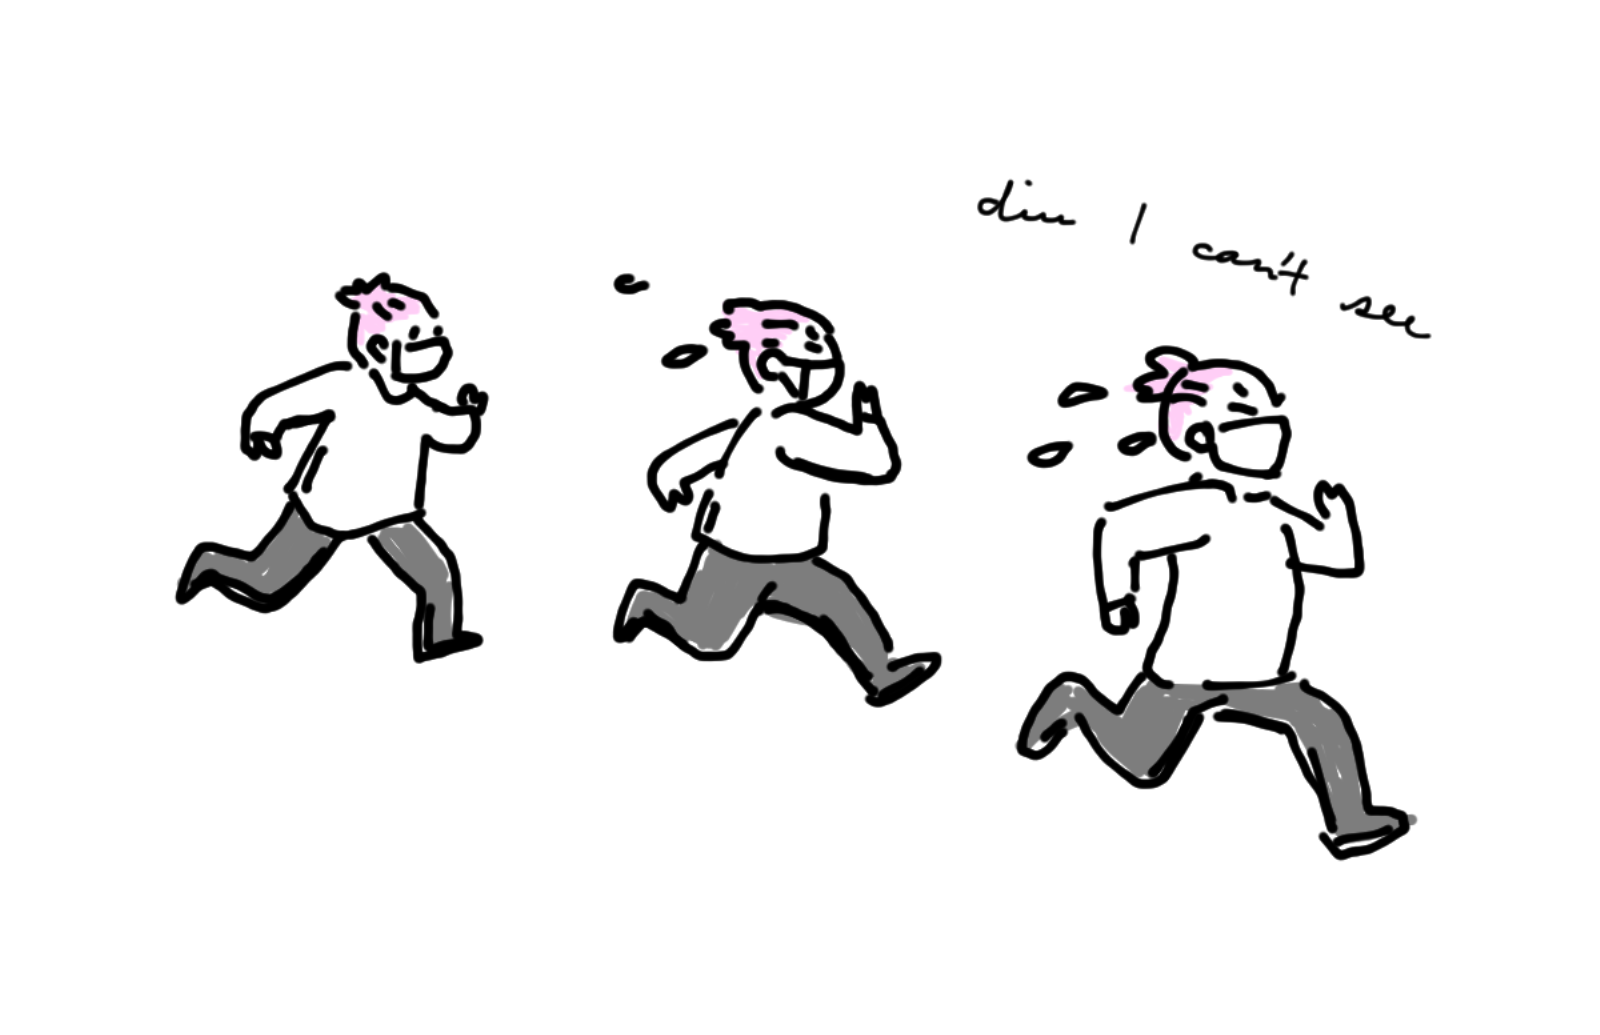 1am.png